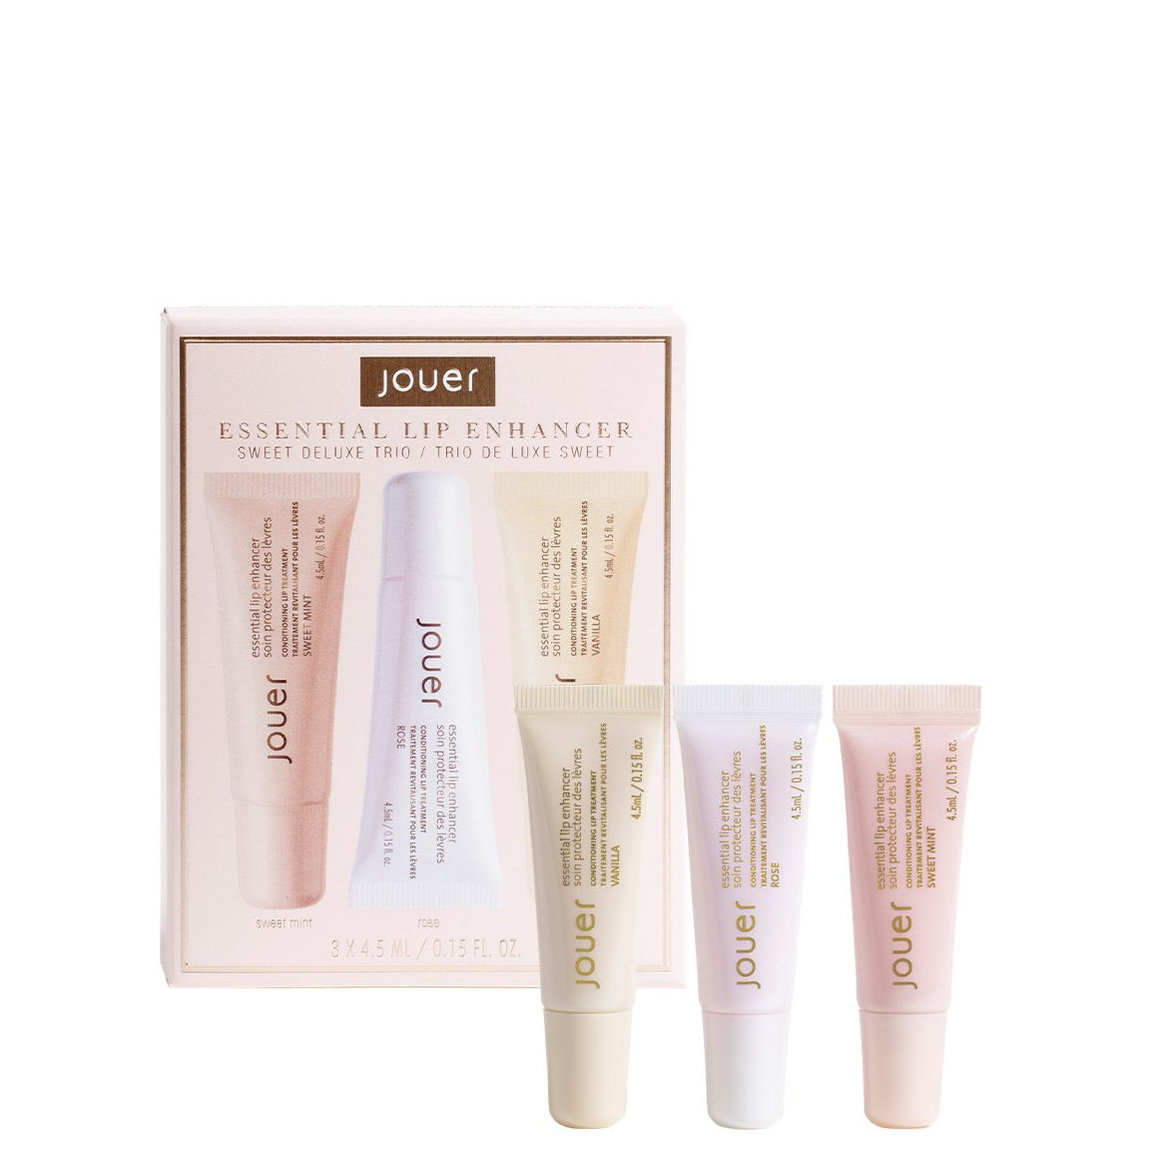 Jouer Cosmetics Essential Lip Enhancer Sweet Deluxe Trio alternative view 1 - product swatch.